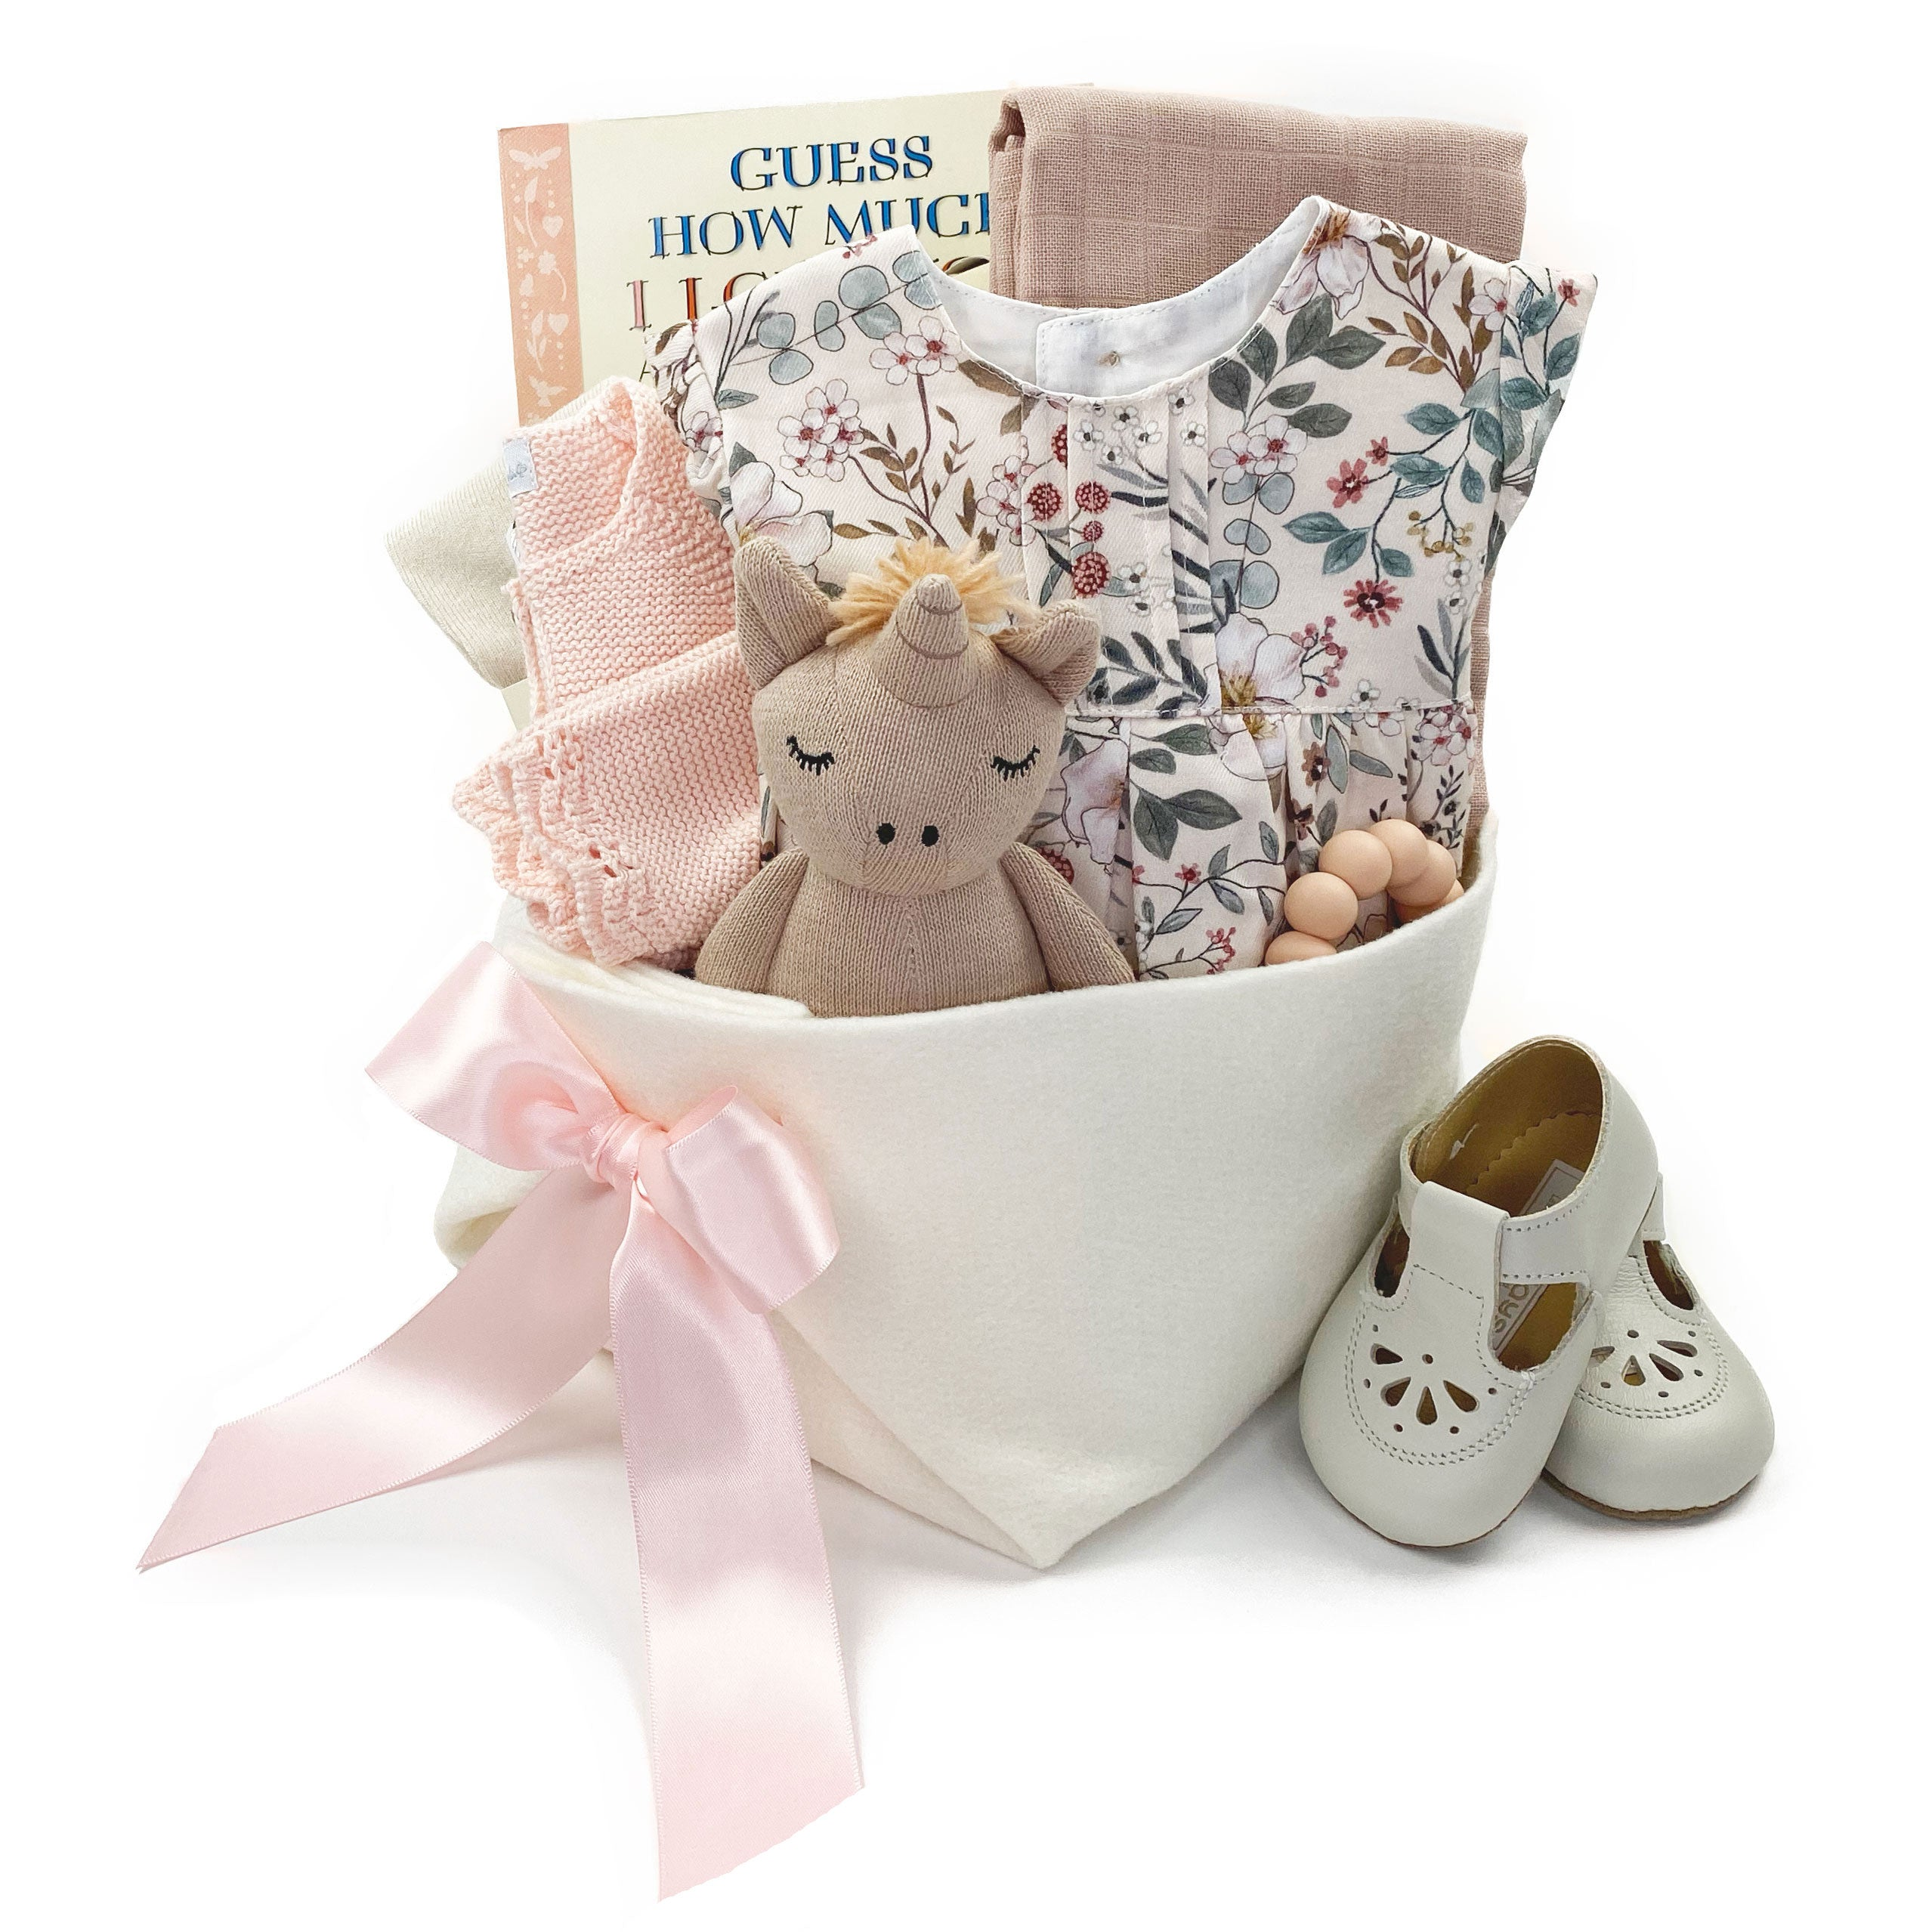 Luxury Baby Gift Baskets at Bonjour Baby Baskets